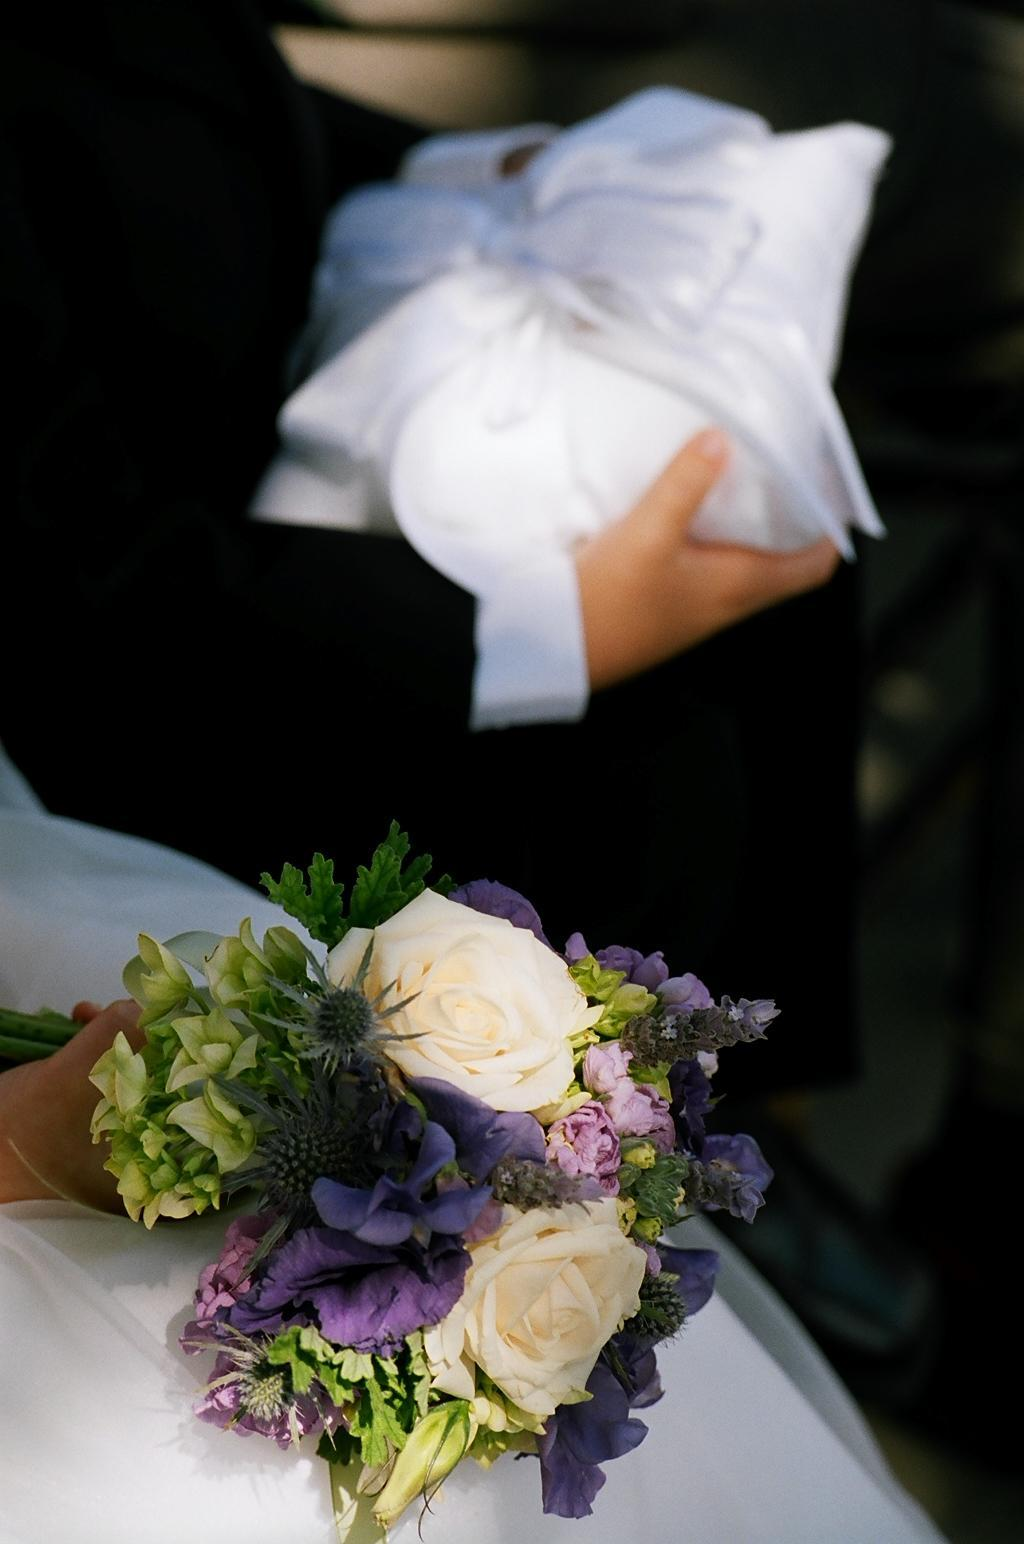 Ceremony, Flowers & Decor, purple, Ceremony Flowers, Flowers, Pillow, Flower_girl, Ring_bearer